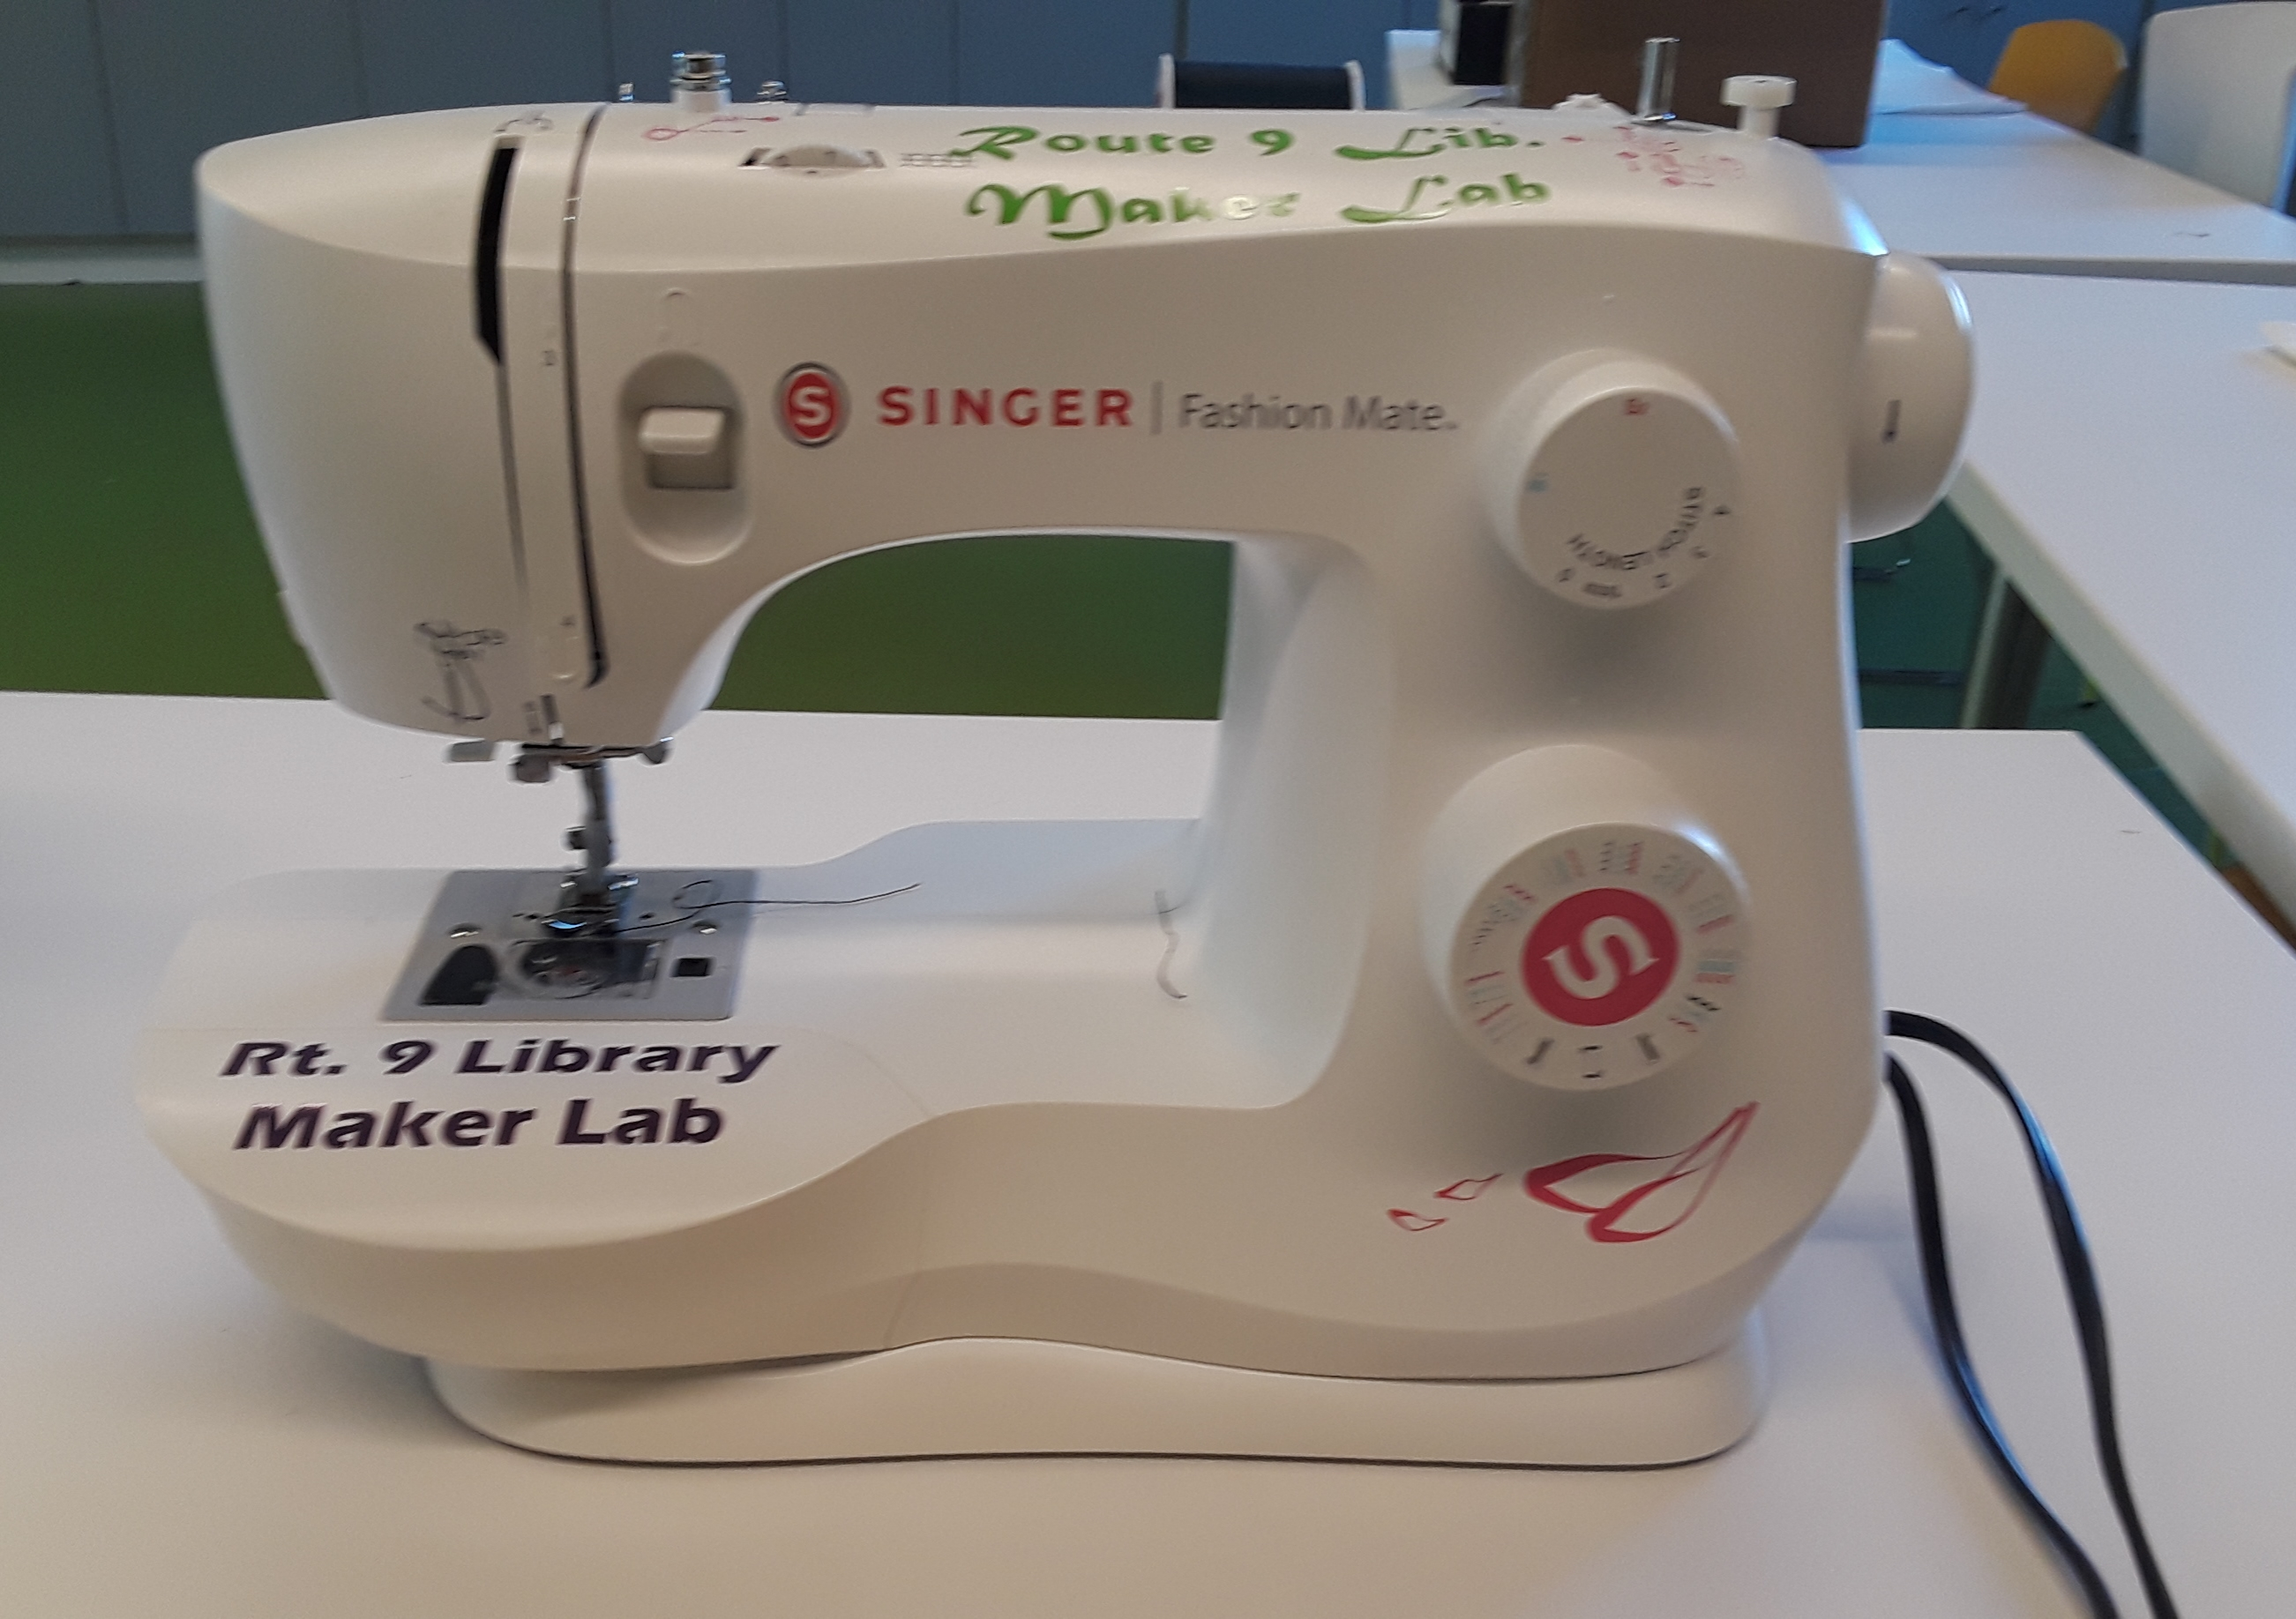 Maker Program: Hangin' by a Thread Sewing Meetup With Route 9 Library